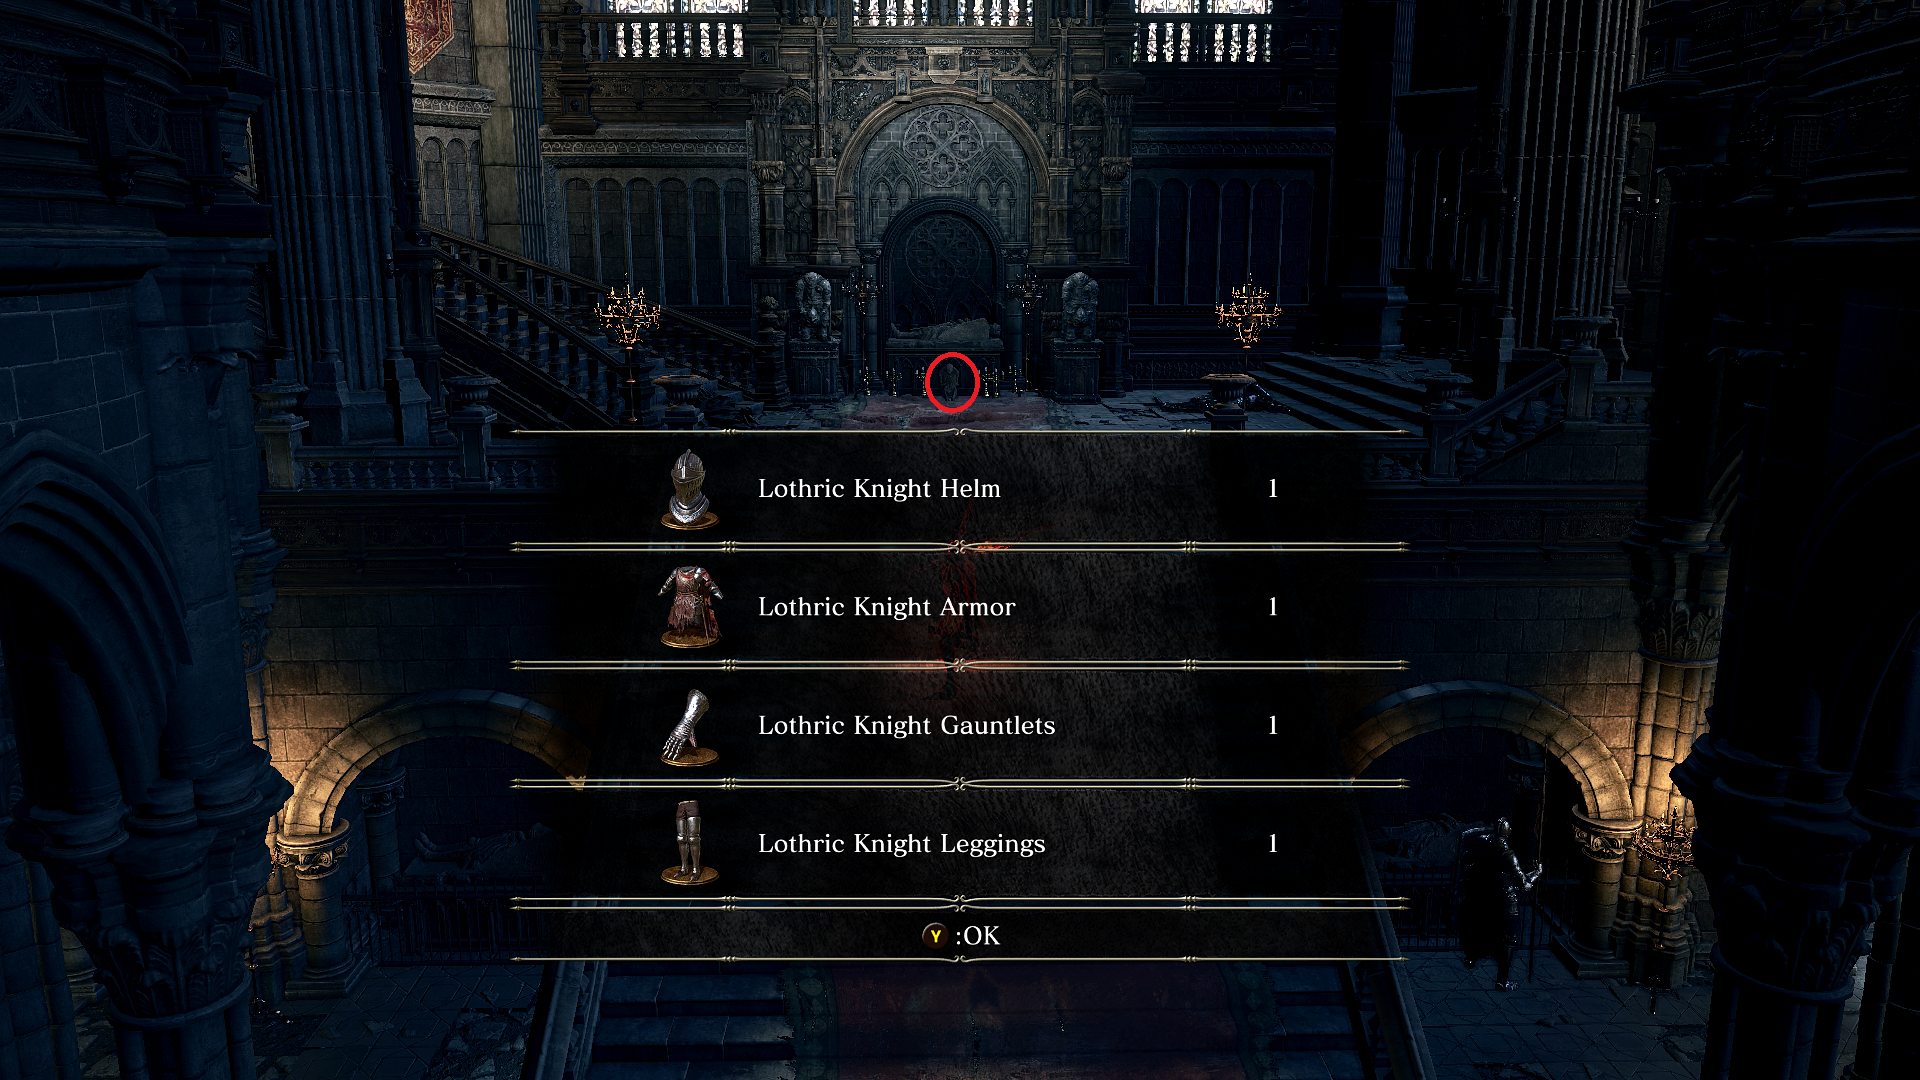 Lothric_Knight_Helm.png